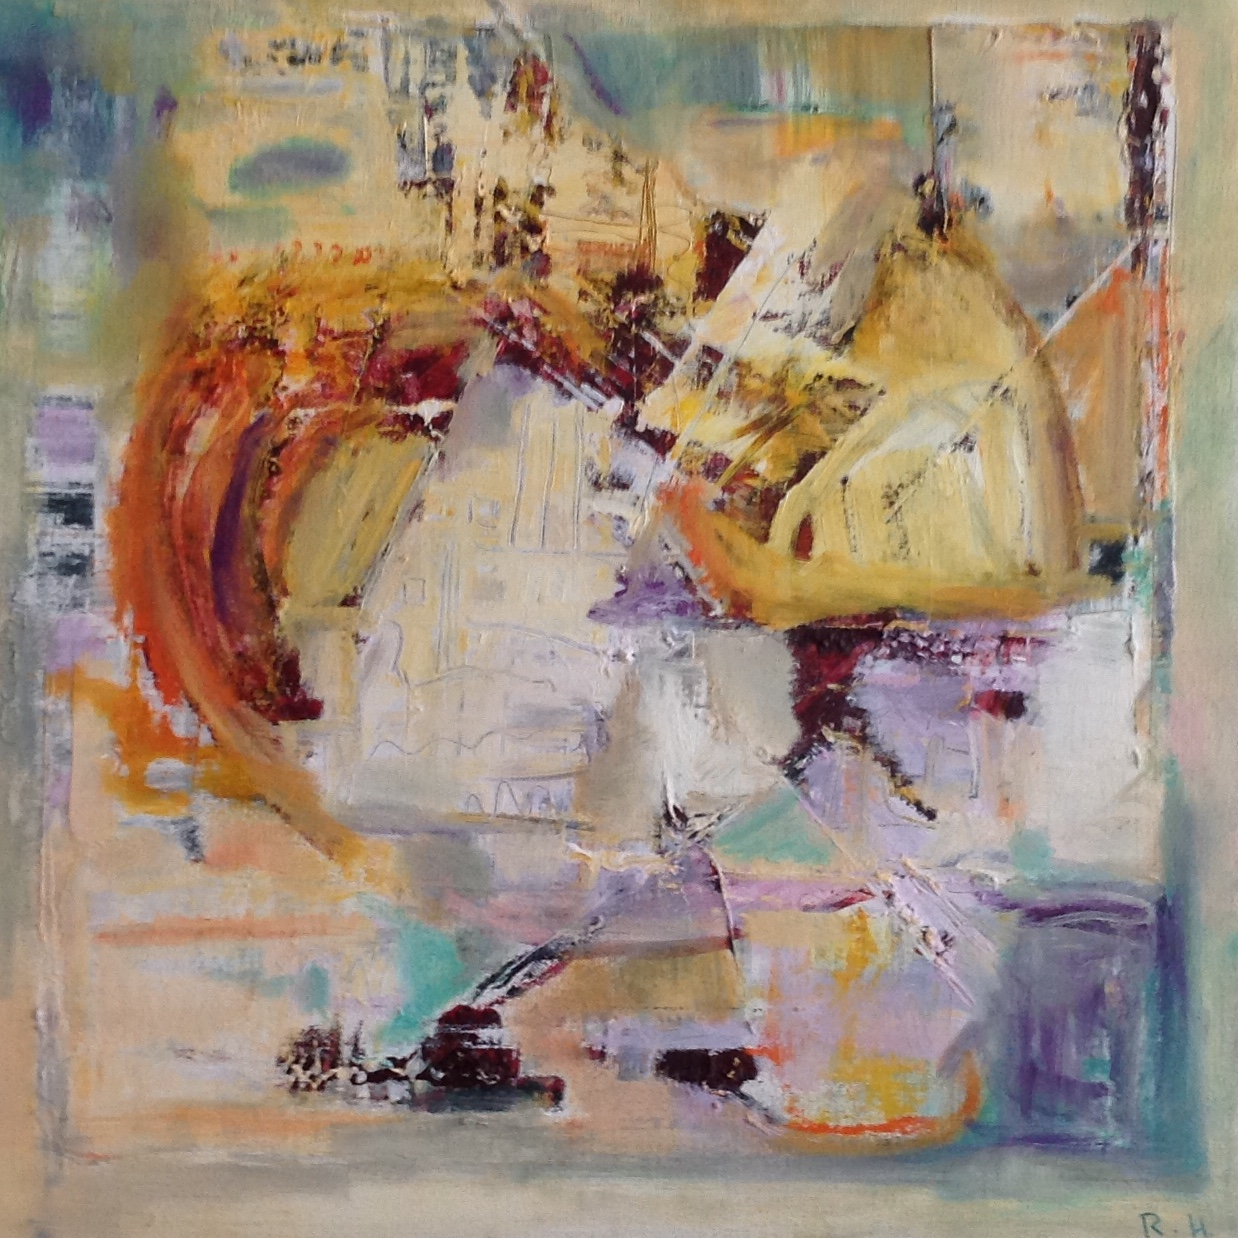 Construction, mixed media on canvas, 20 x 20 inches, 50 x 50 cm